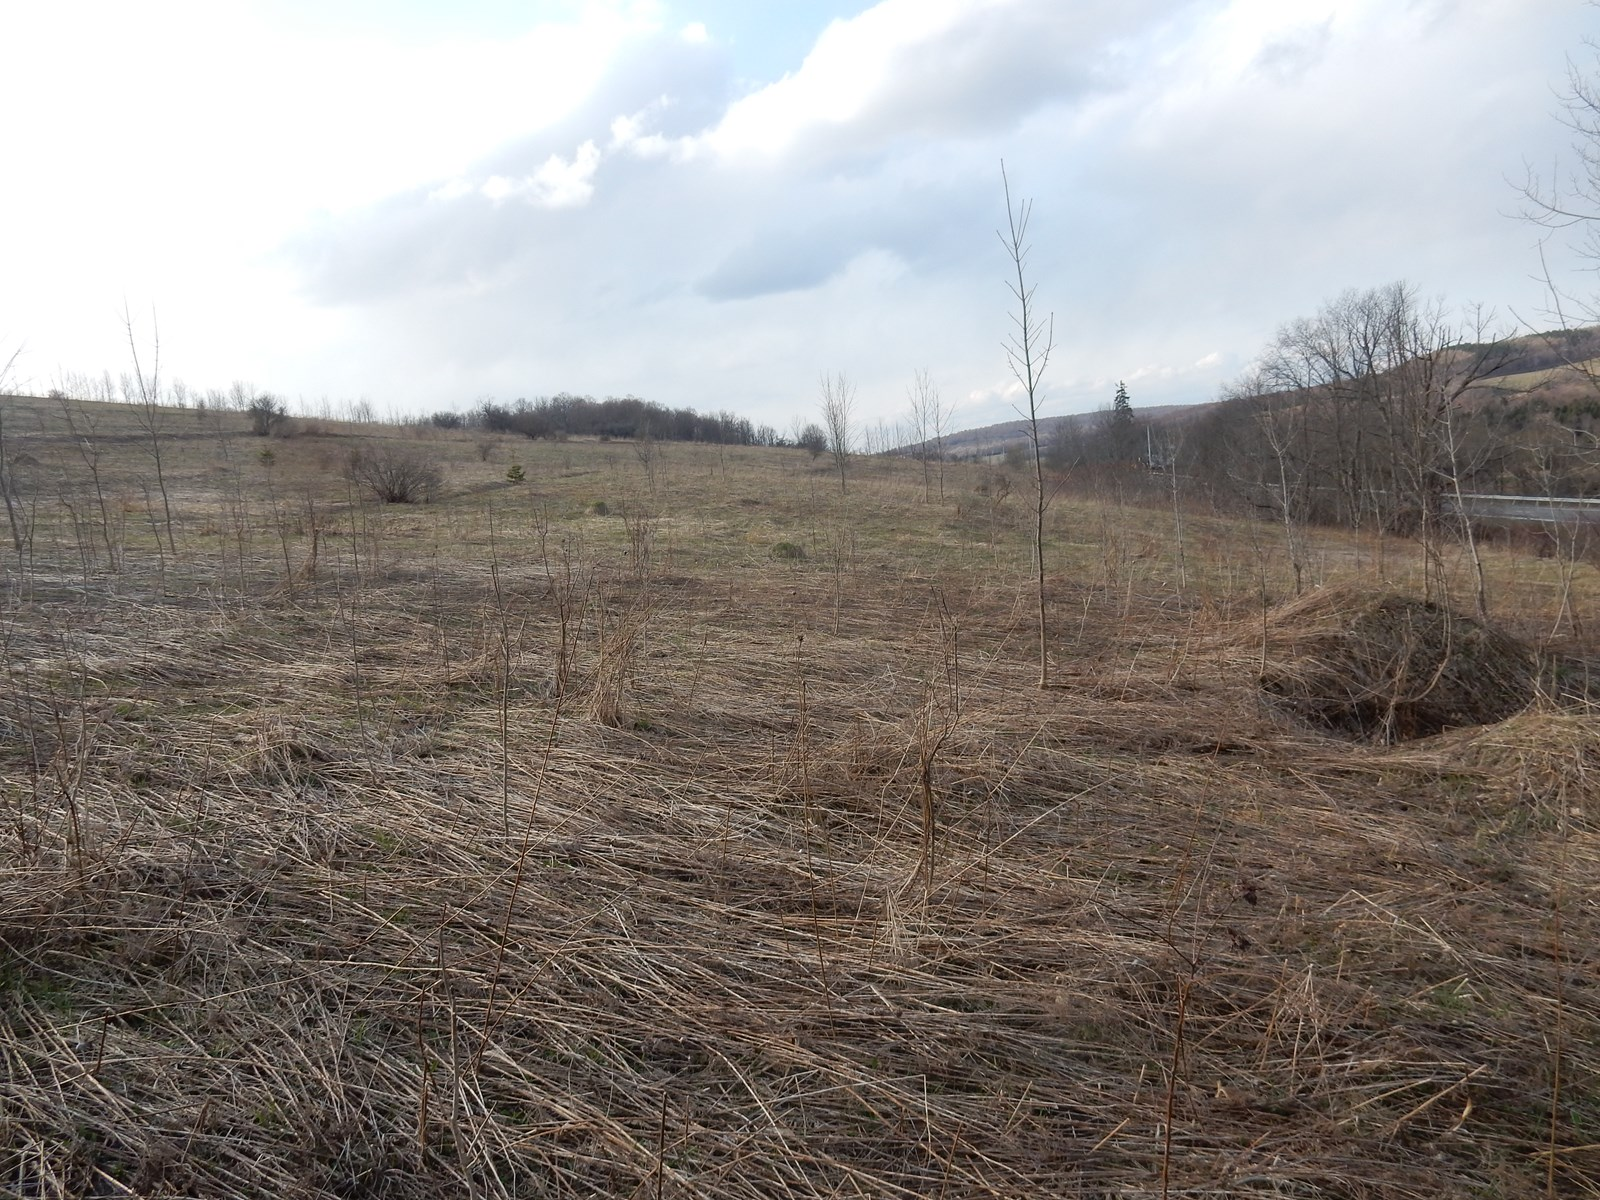 Hunting Property or Building Lot For Sale in Cortland County